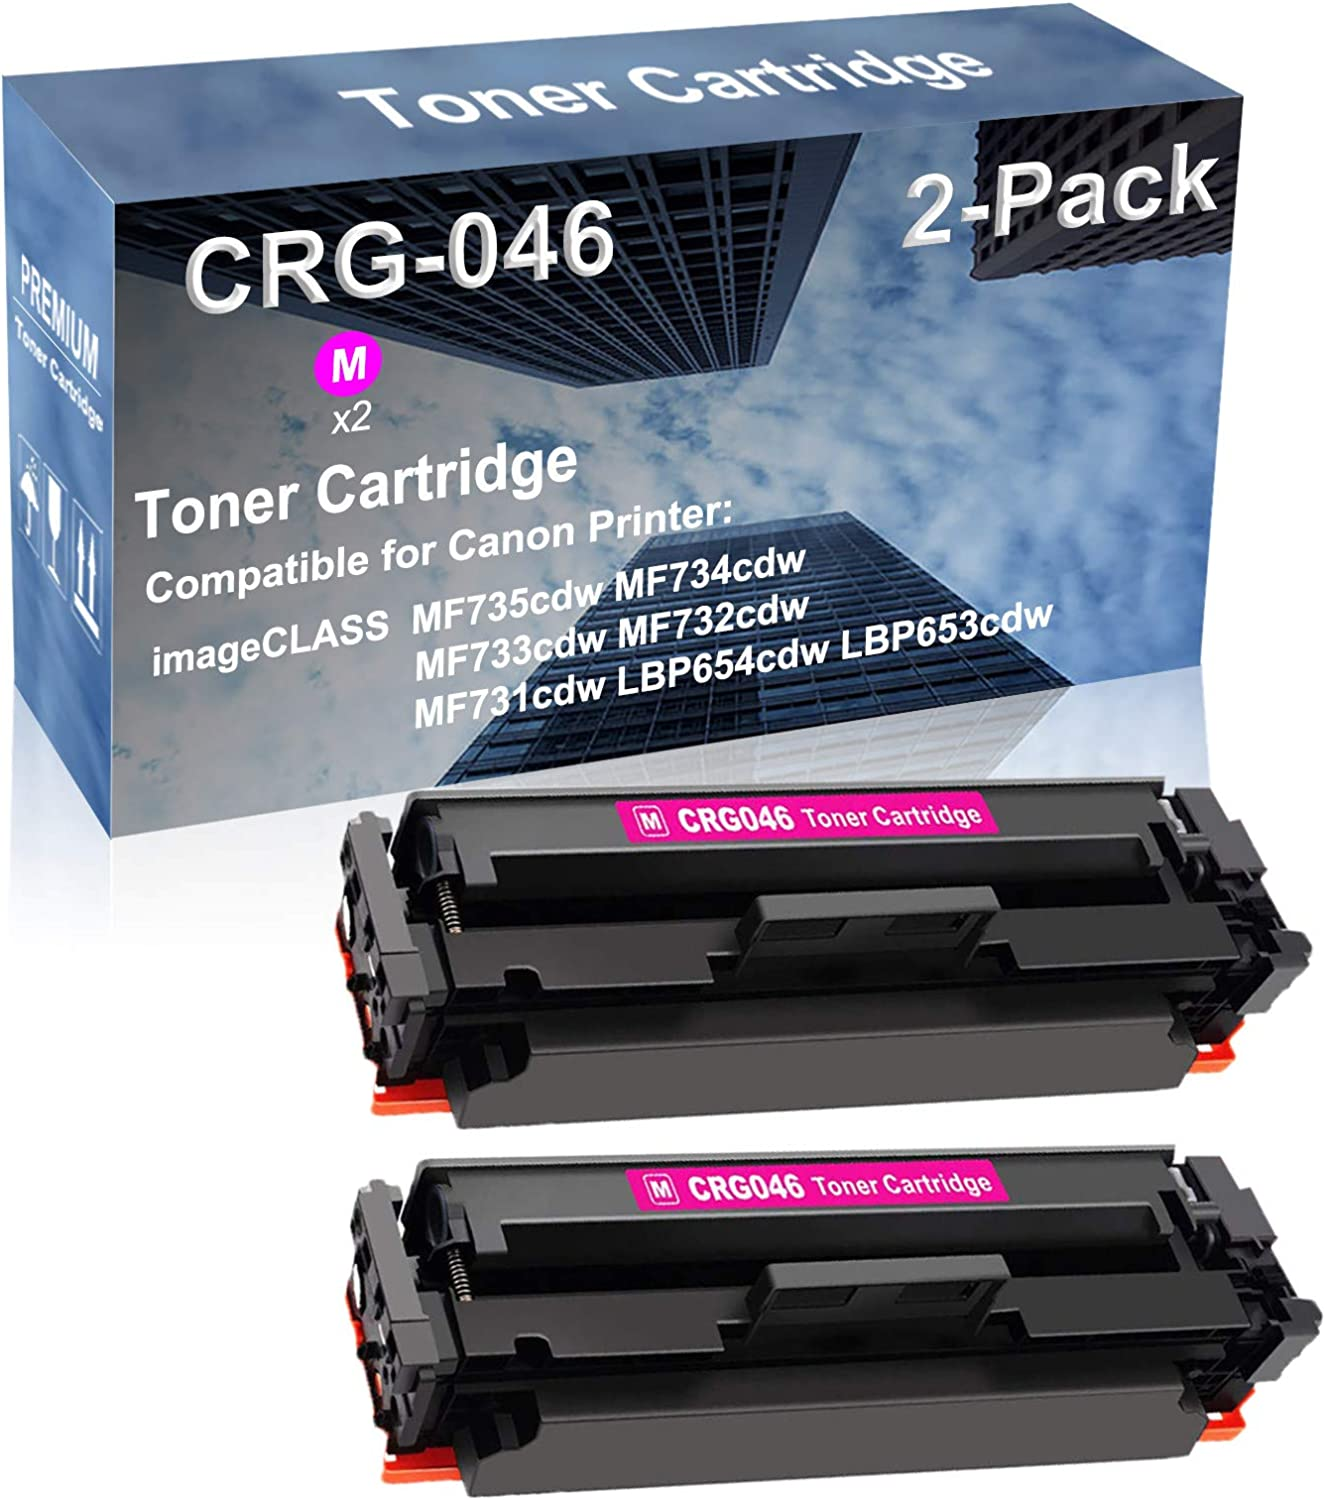 2-Pack (Magenta) Compatible High Yield CRG-046 Laser Printer Toner Cartridge Used for Canon Color imageCLASS LBP654cdw LBP653cdw Laser Printer